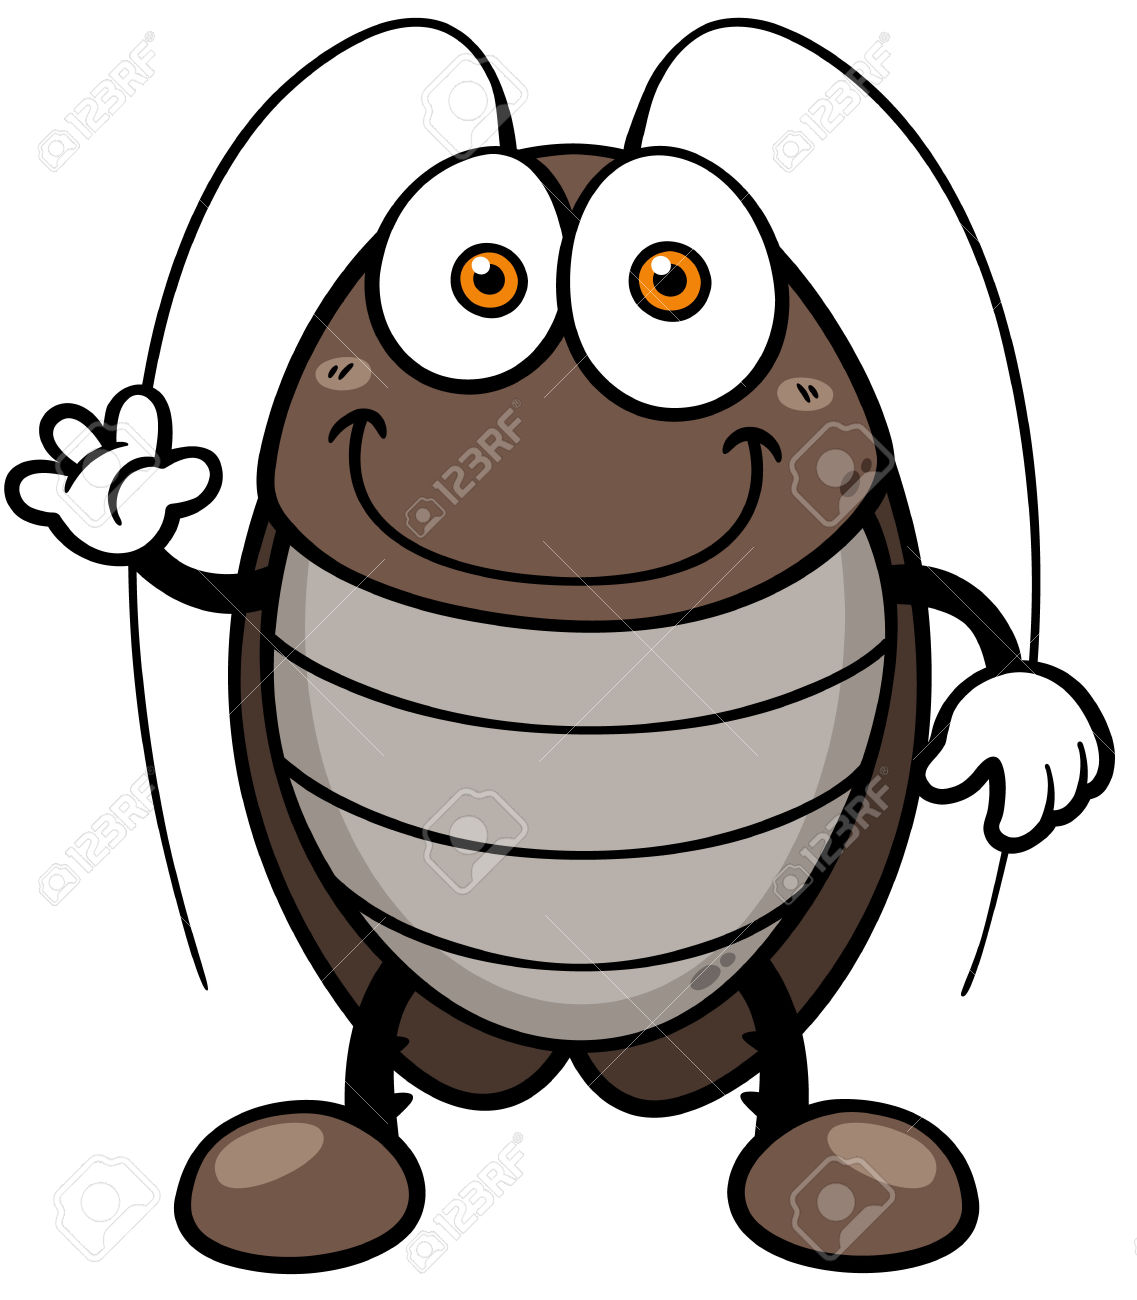 1137x1300 Cockroach clipart funny cartoon